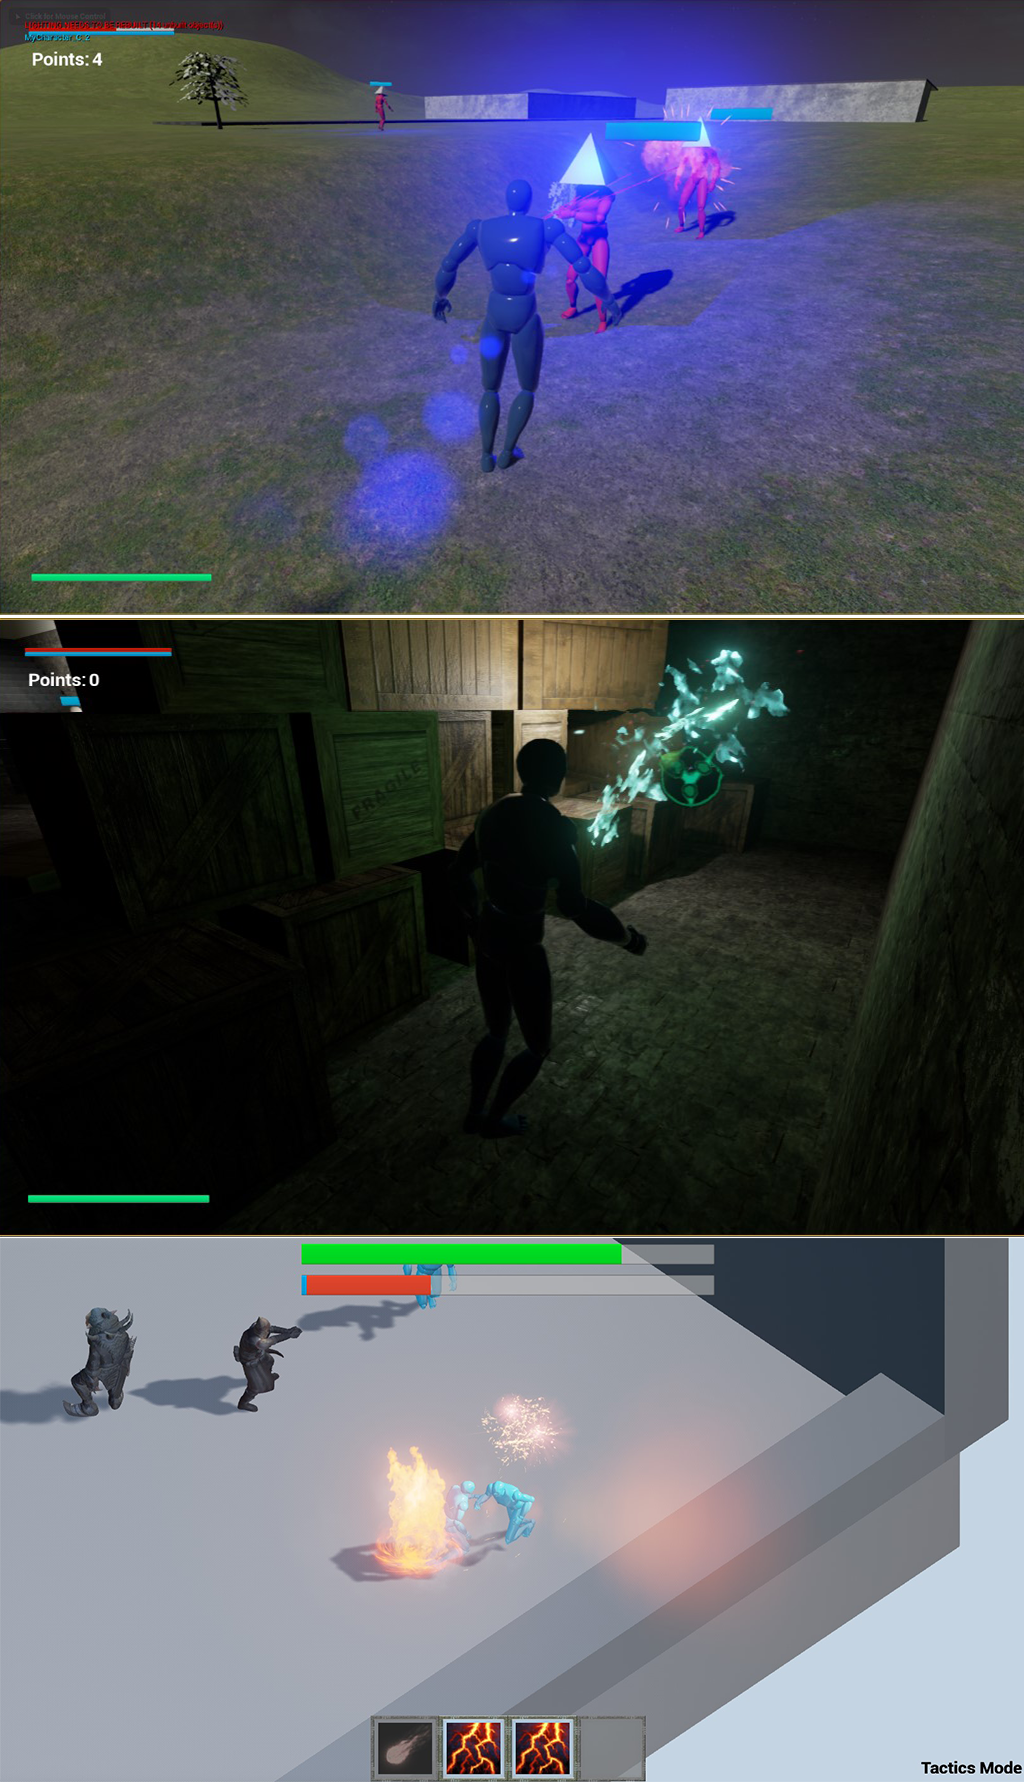 These are actual video games created by Baylor students in